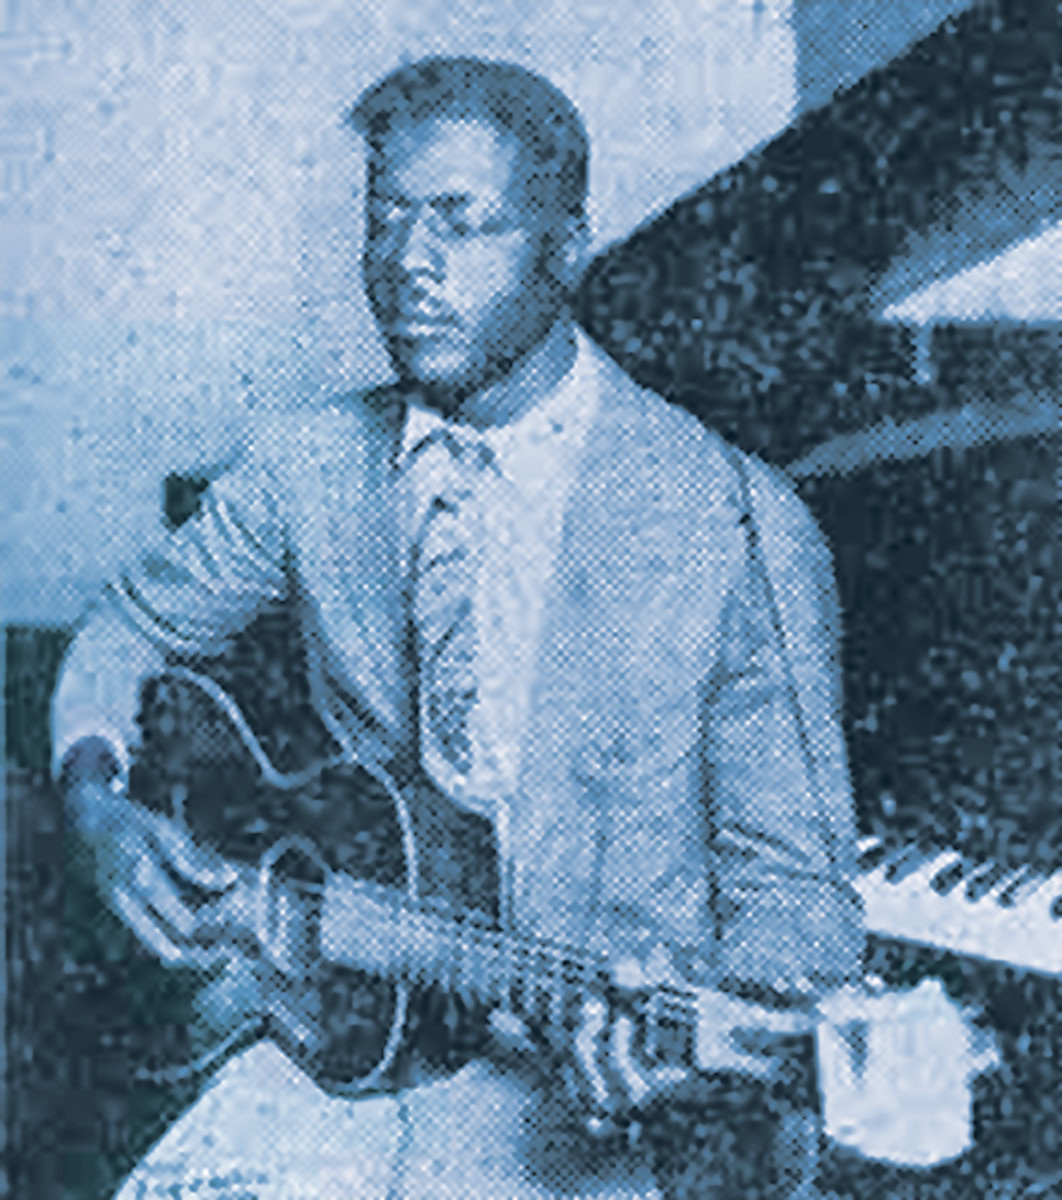 Blind Willie Johnson. Photo by Michael Ochs Archives/Getty Images.